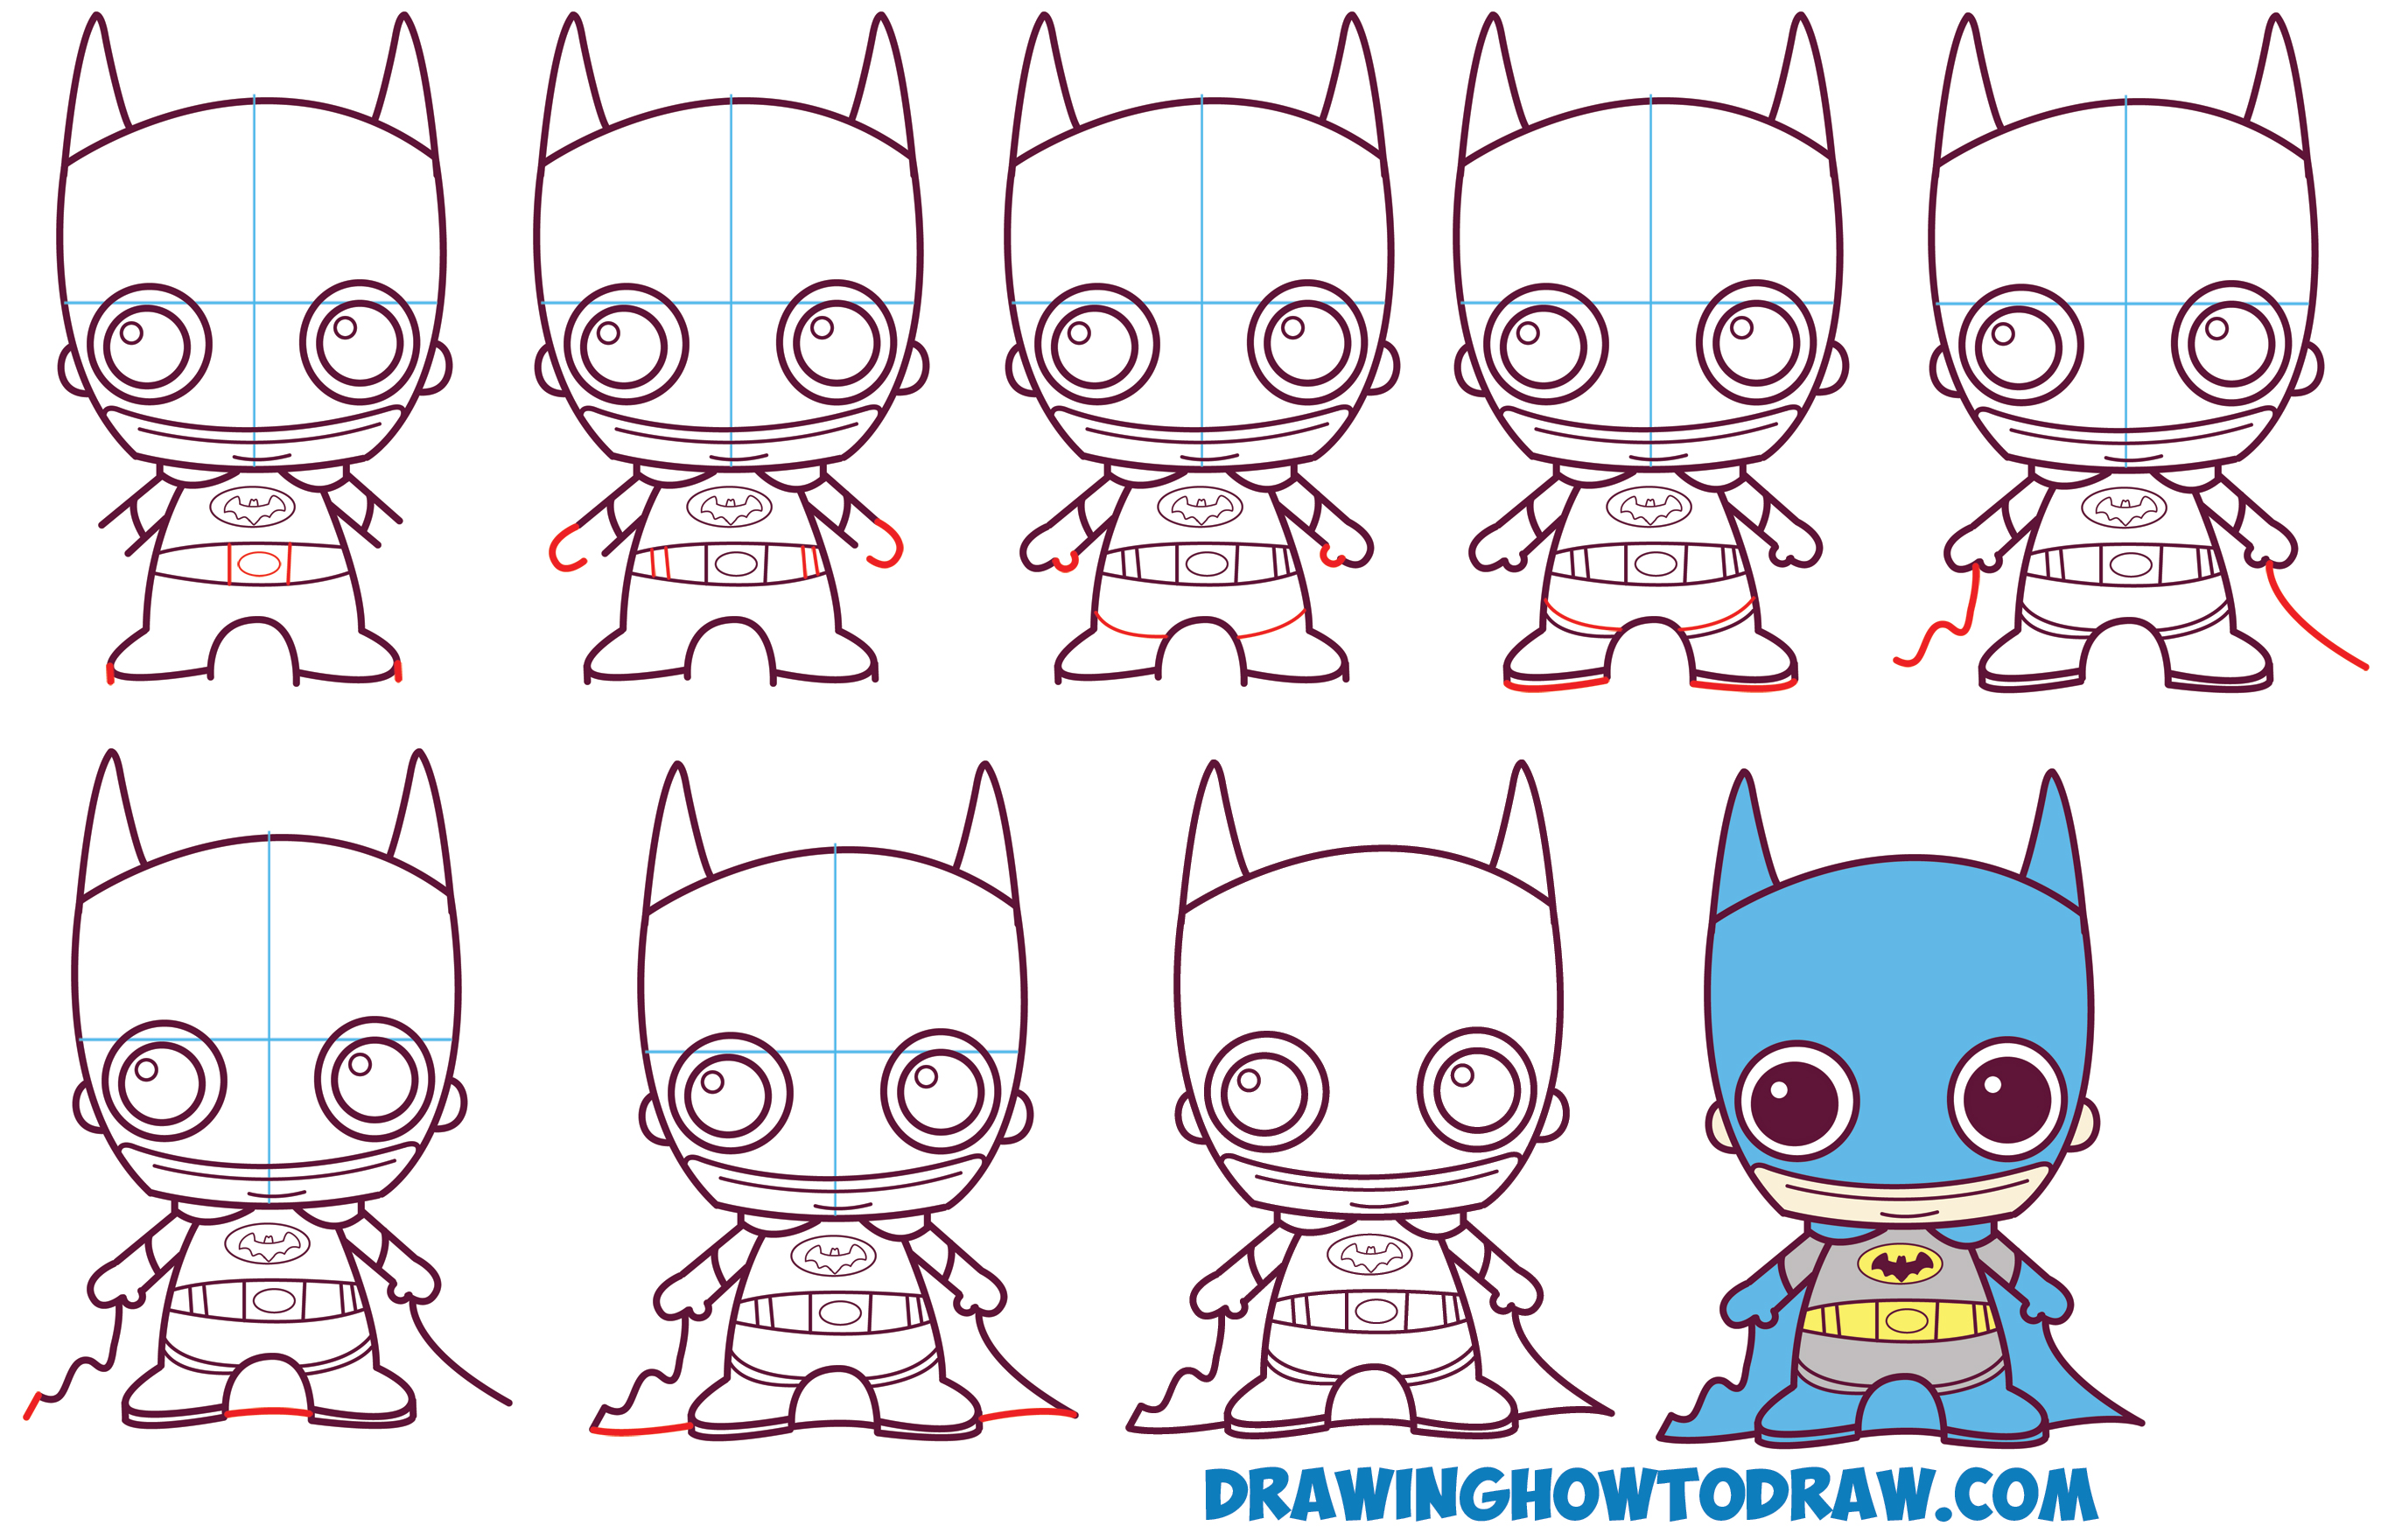 Learn How to Draw Cute / Baby / Kawaii / Chibi Batman from DC Comics in Simple Steps Drawing Lesson for Kids